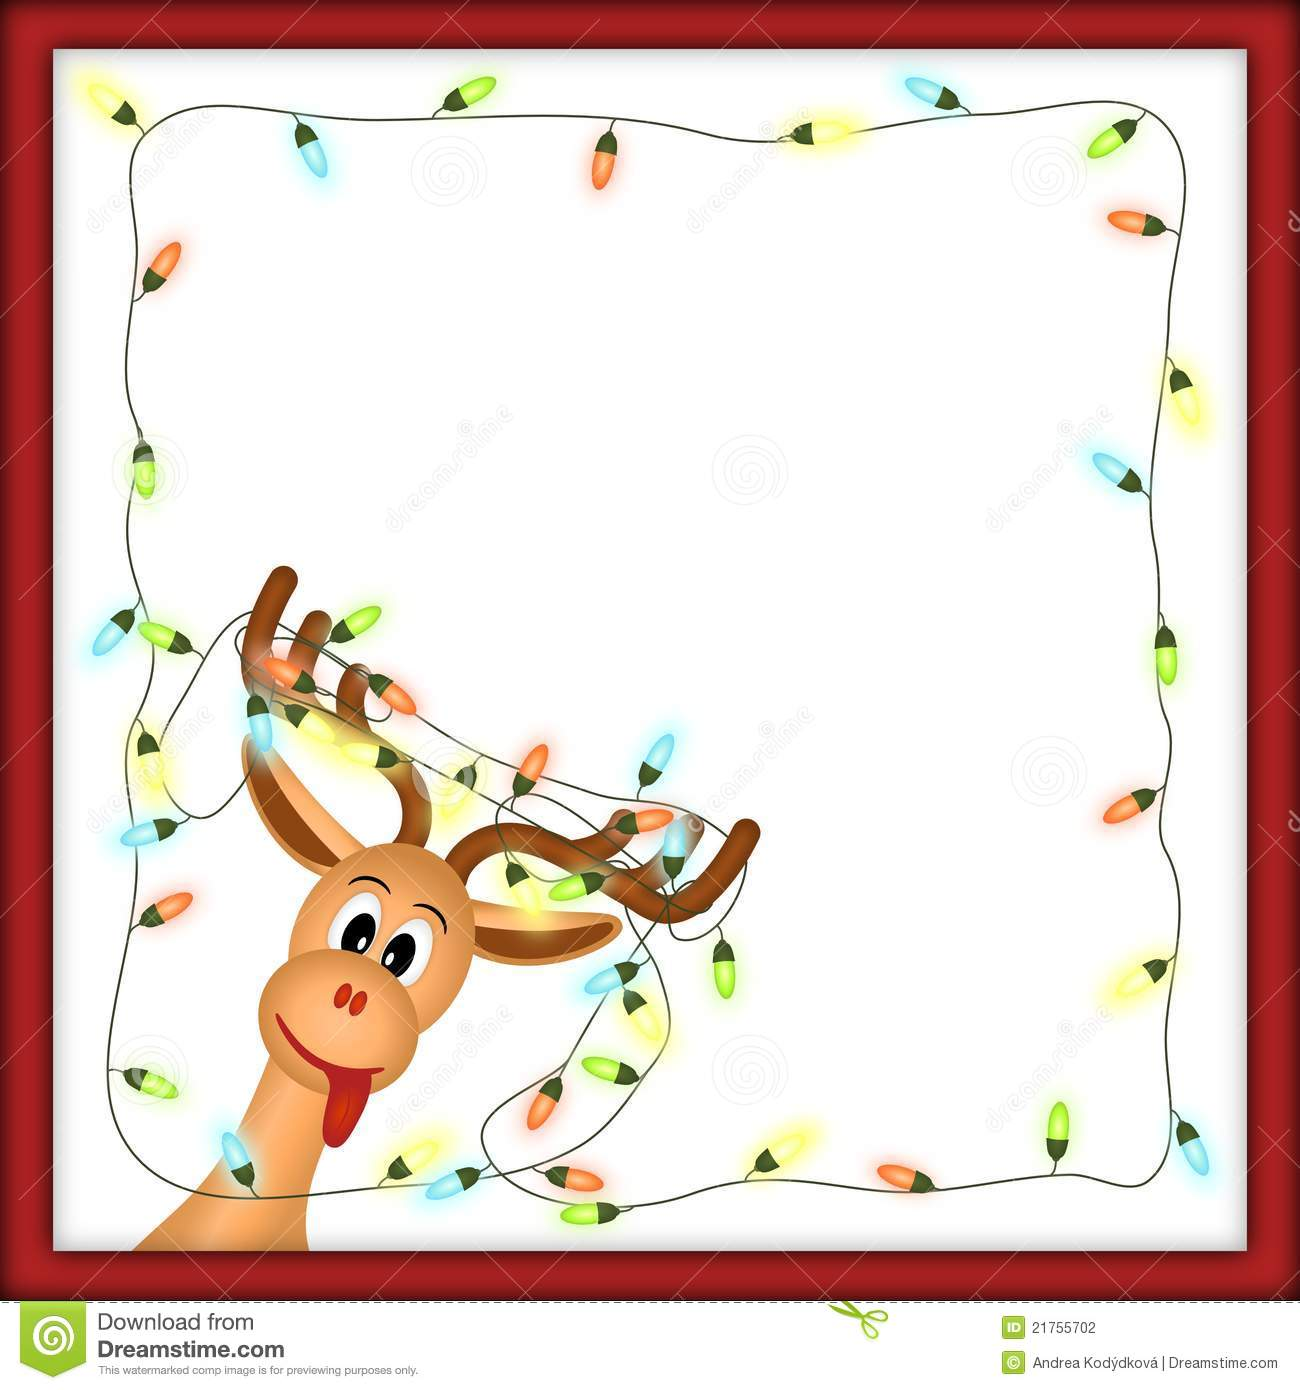 Funny Reindeer With Christmas Lights In Red Frame Stock Illustration ...